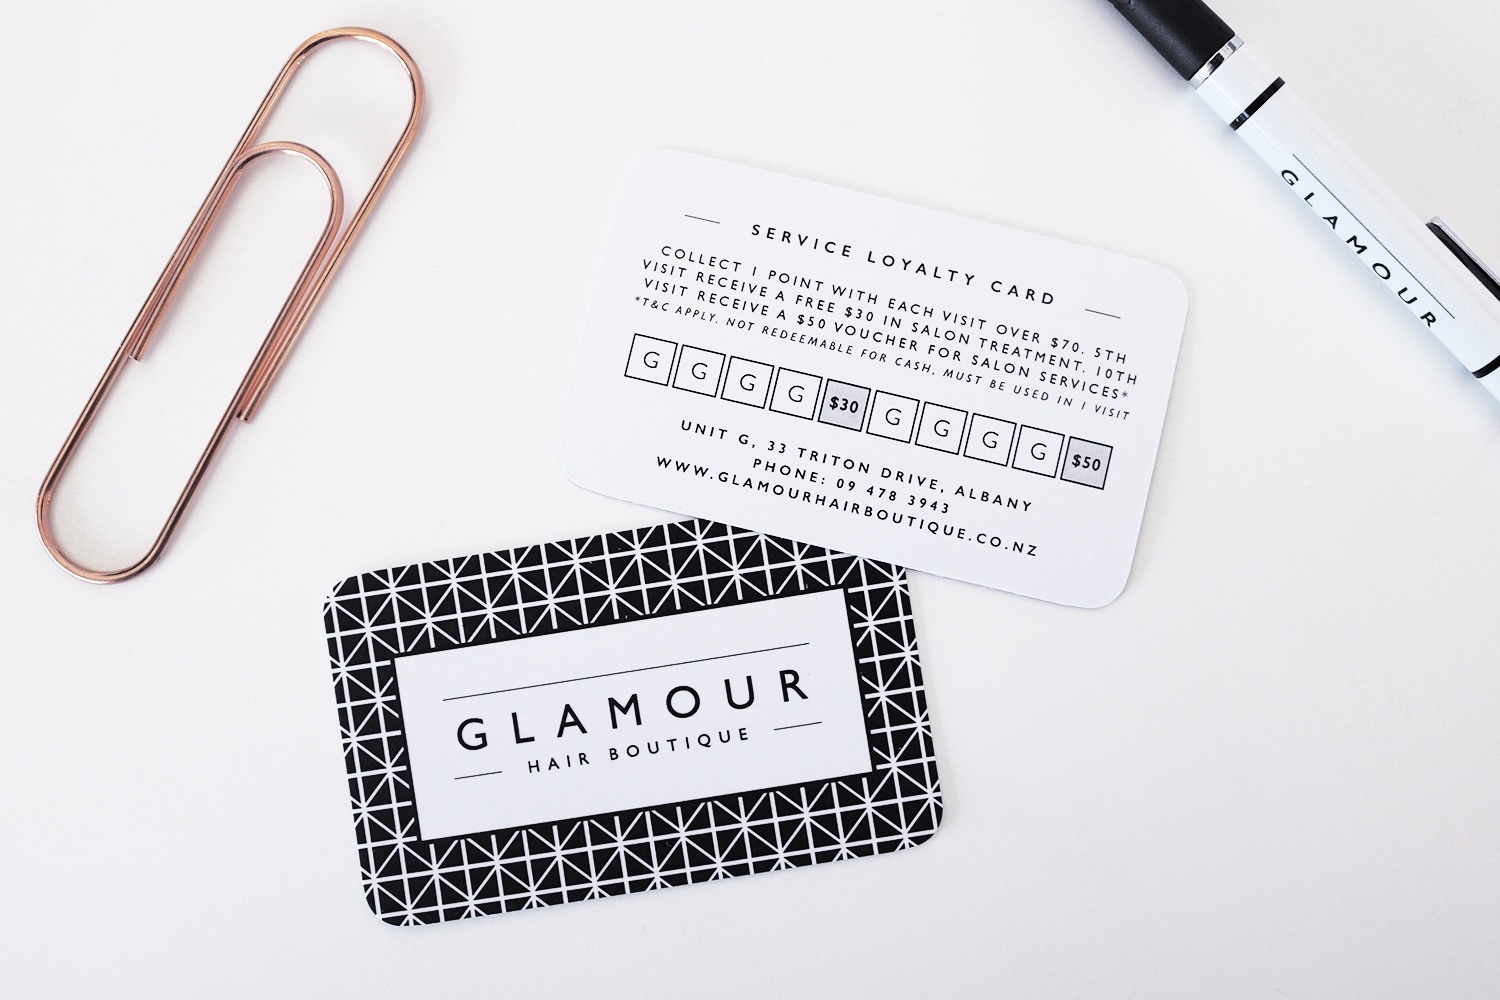 Glamour Hair Boutique Service loyalty card design